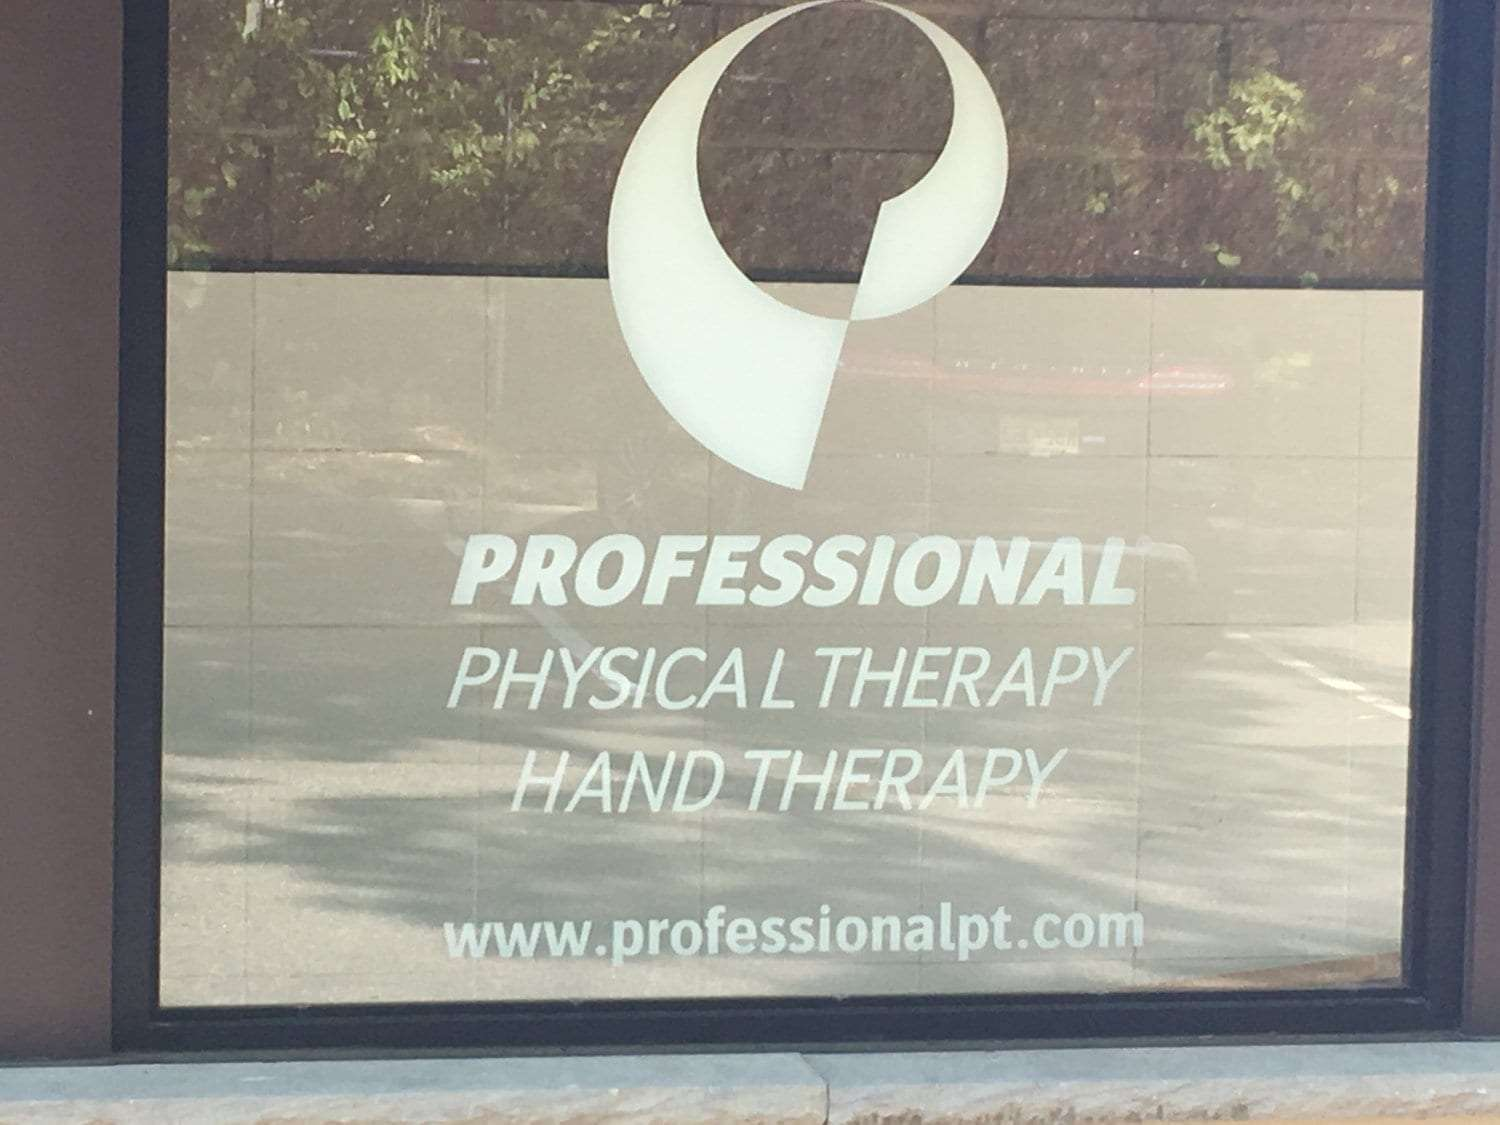 Here is a window at our clinic. The window says